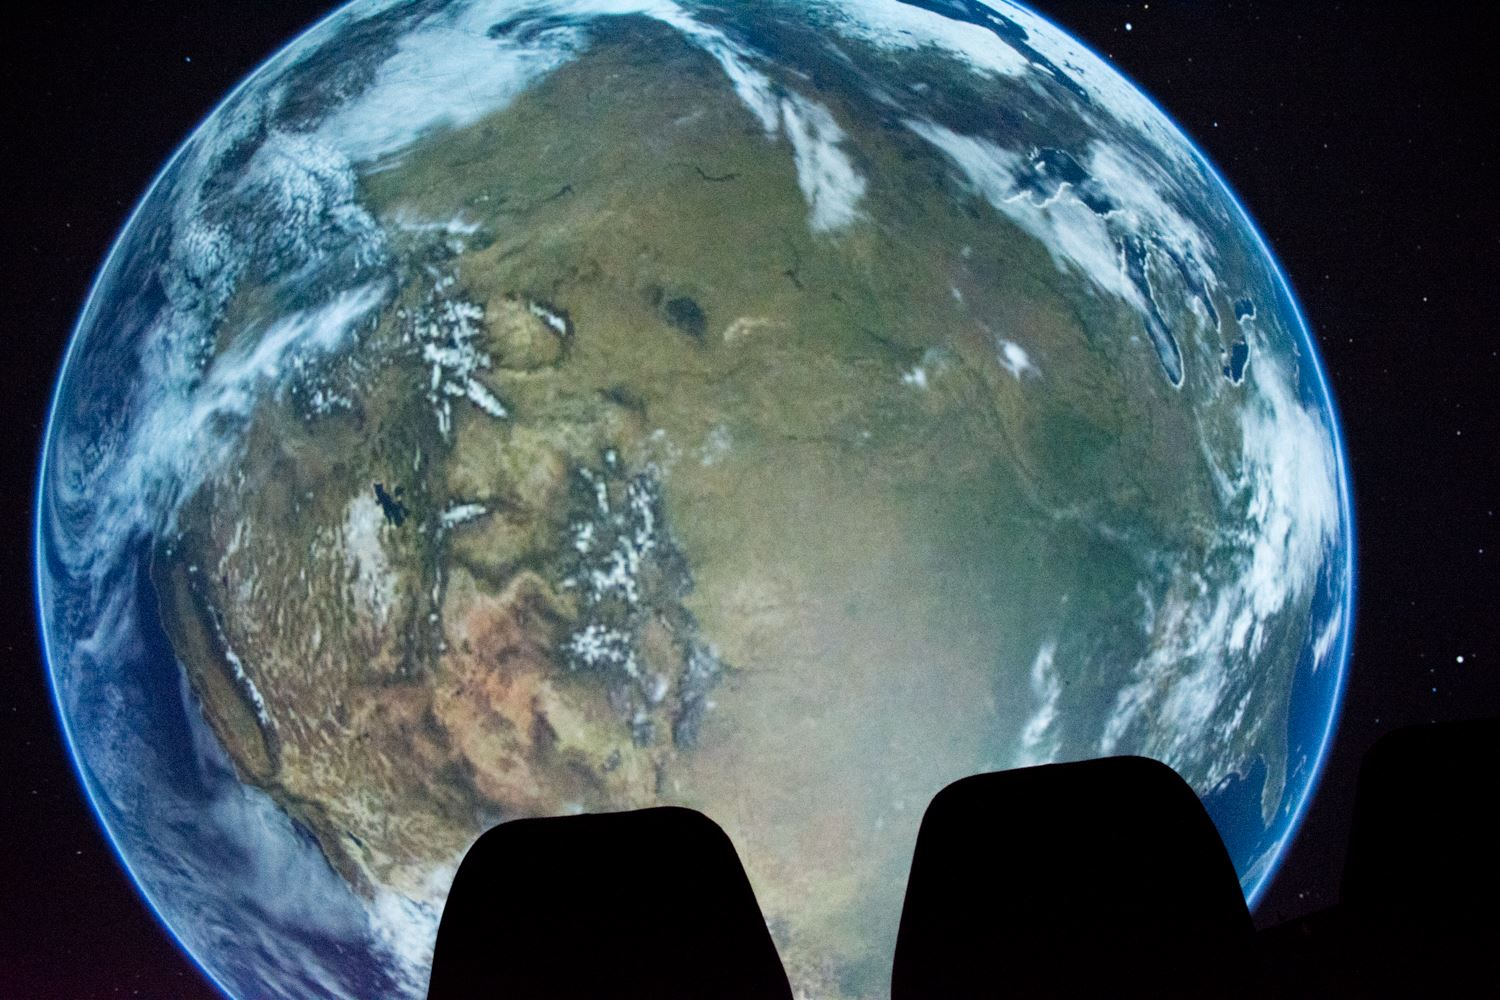 Planetarium with earth